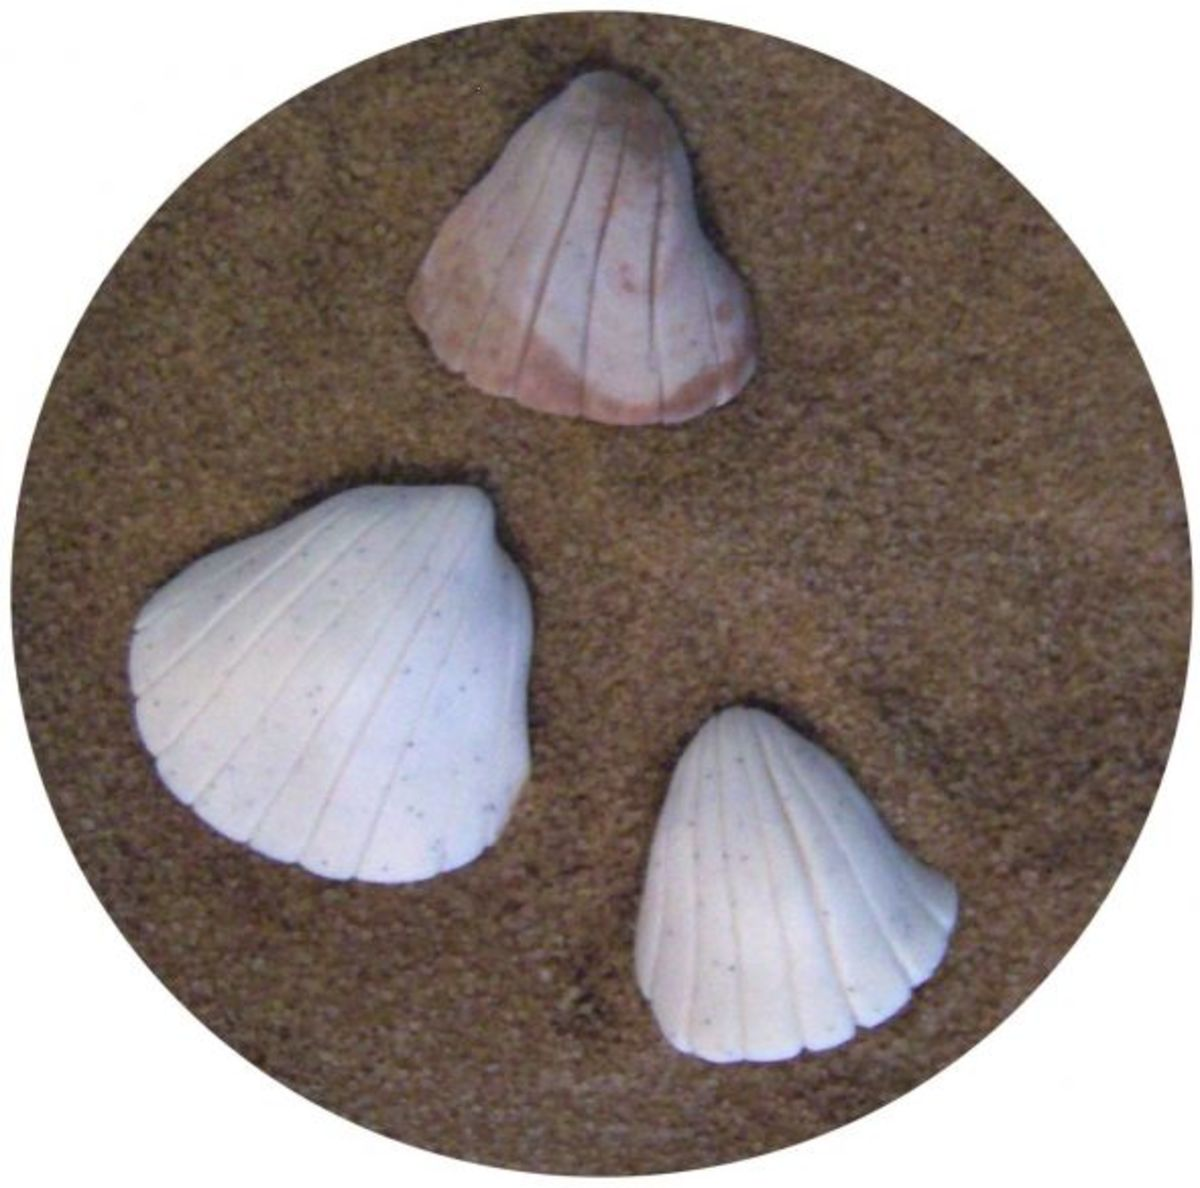 Cockle shells made with vanilla bean and cocoa fondant